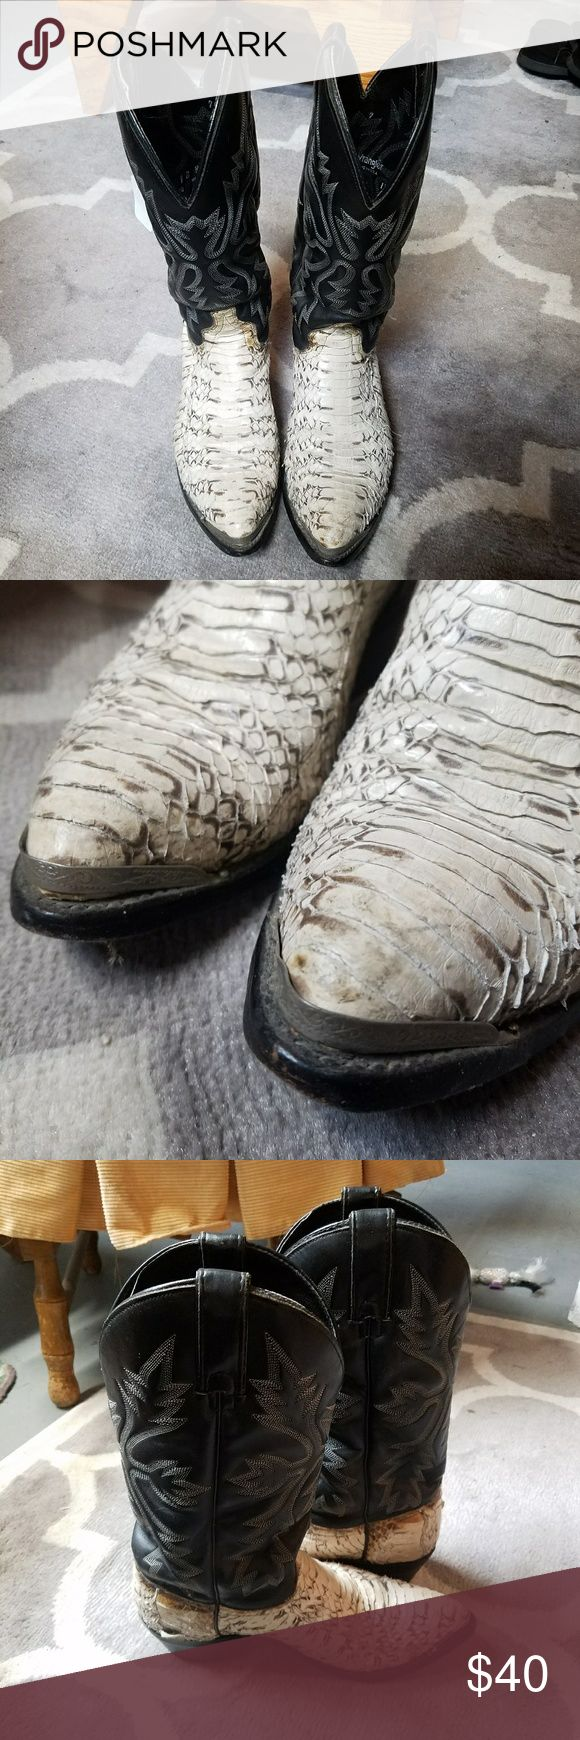 Snakeskin Cowboy Boots Snakeskin cowboy boots by Wrangler with boot tips. Size 7D men's which is like an 8.5 wide women's. The snakeskin has some wear. Wrangler Shoes Cowboy & Western Boots